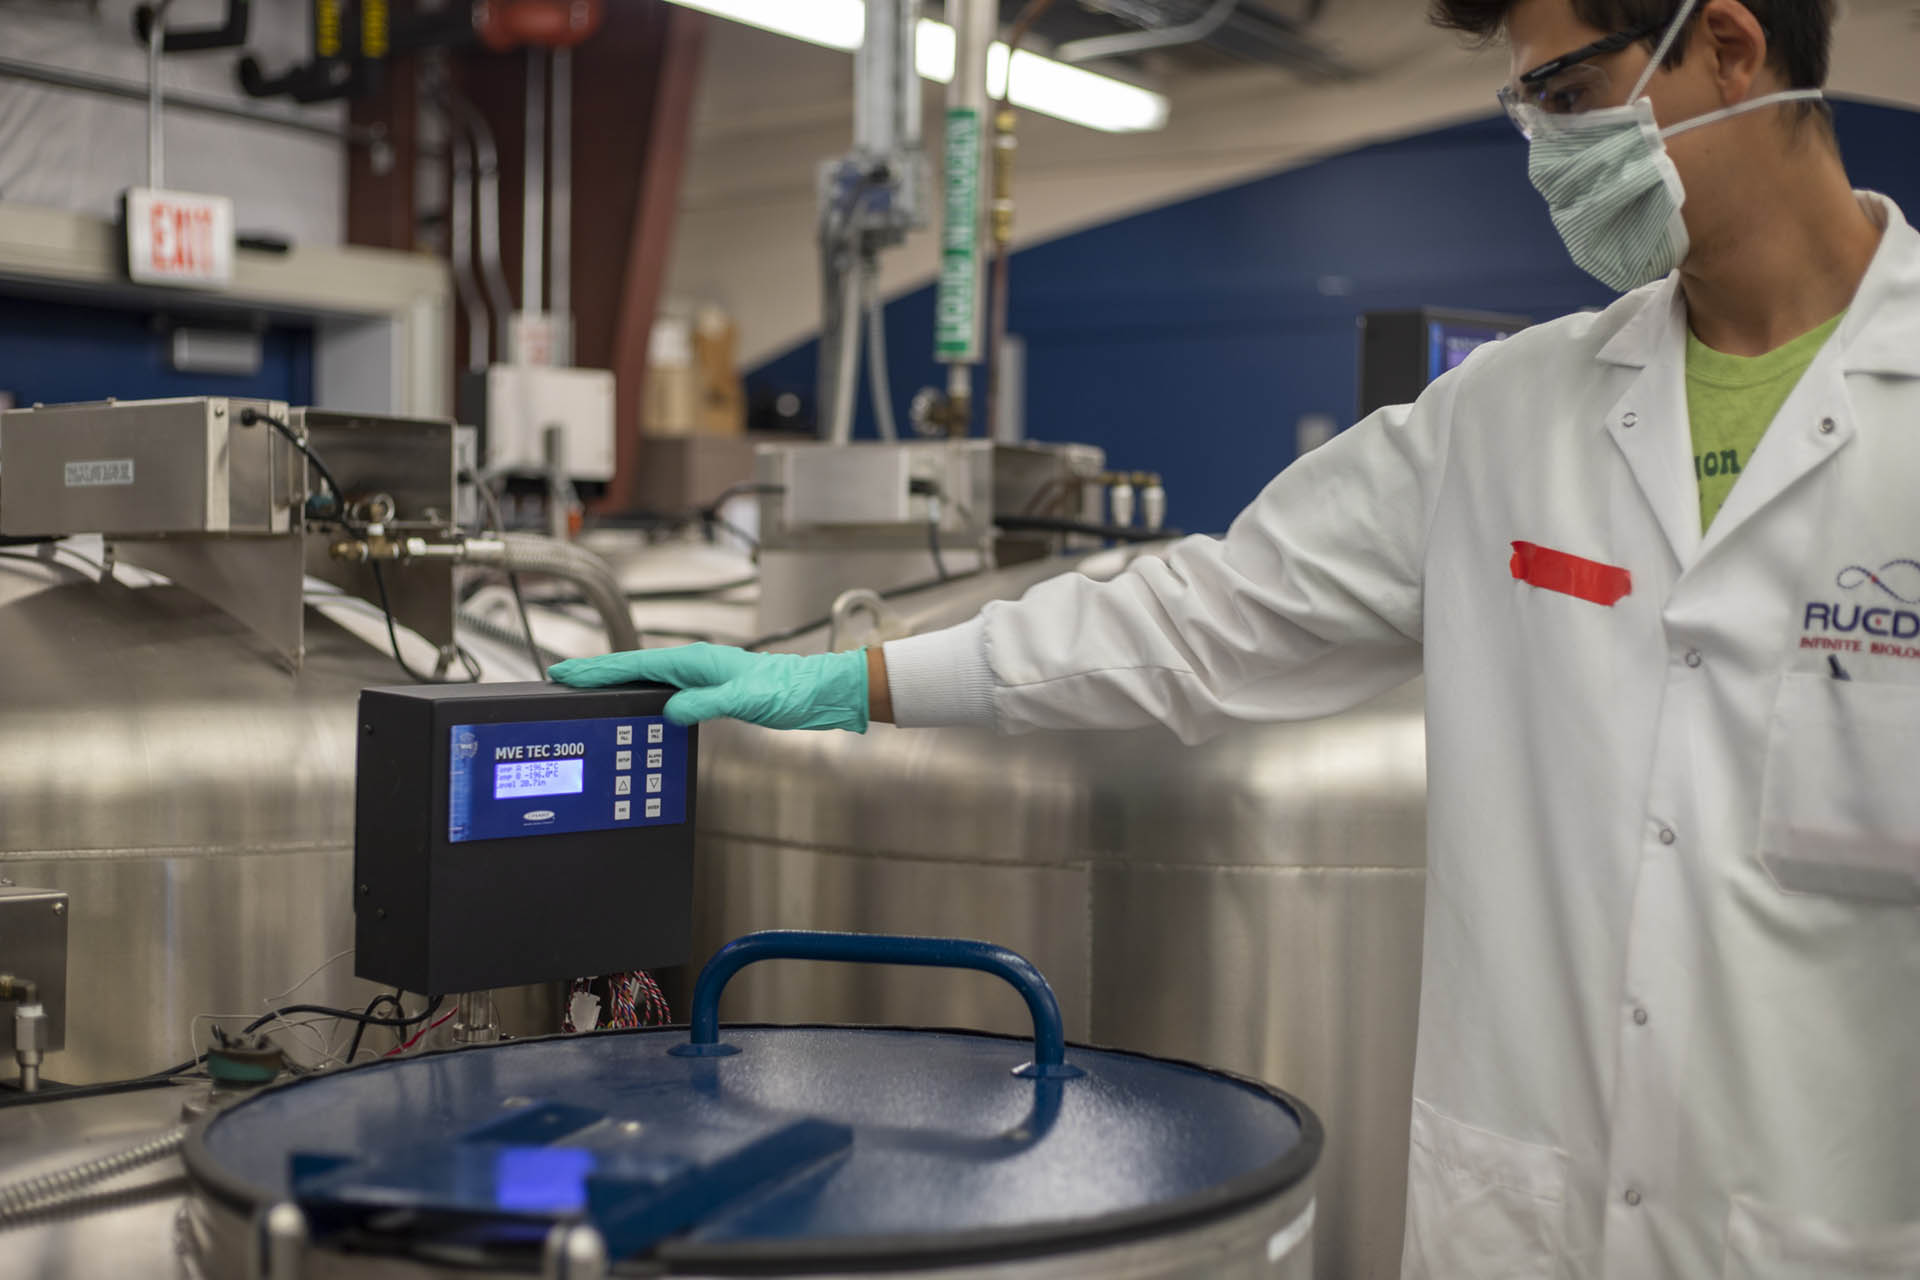 A laboratory researcher works with scientific equipment.